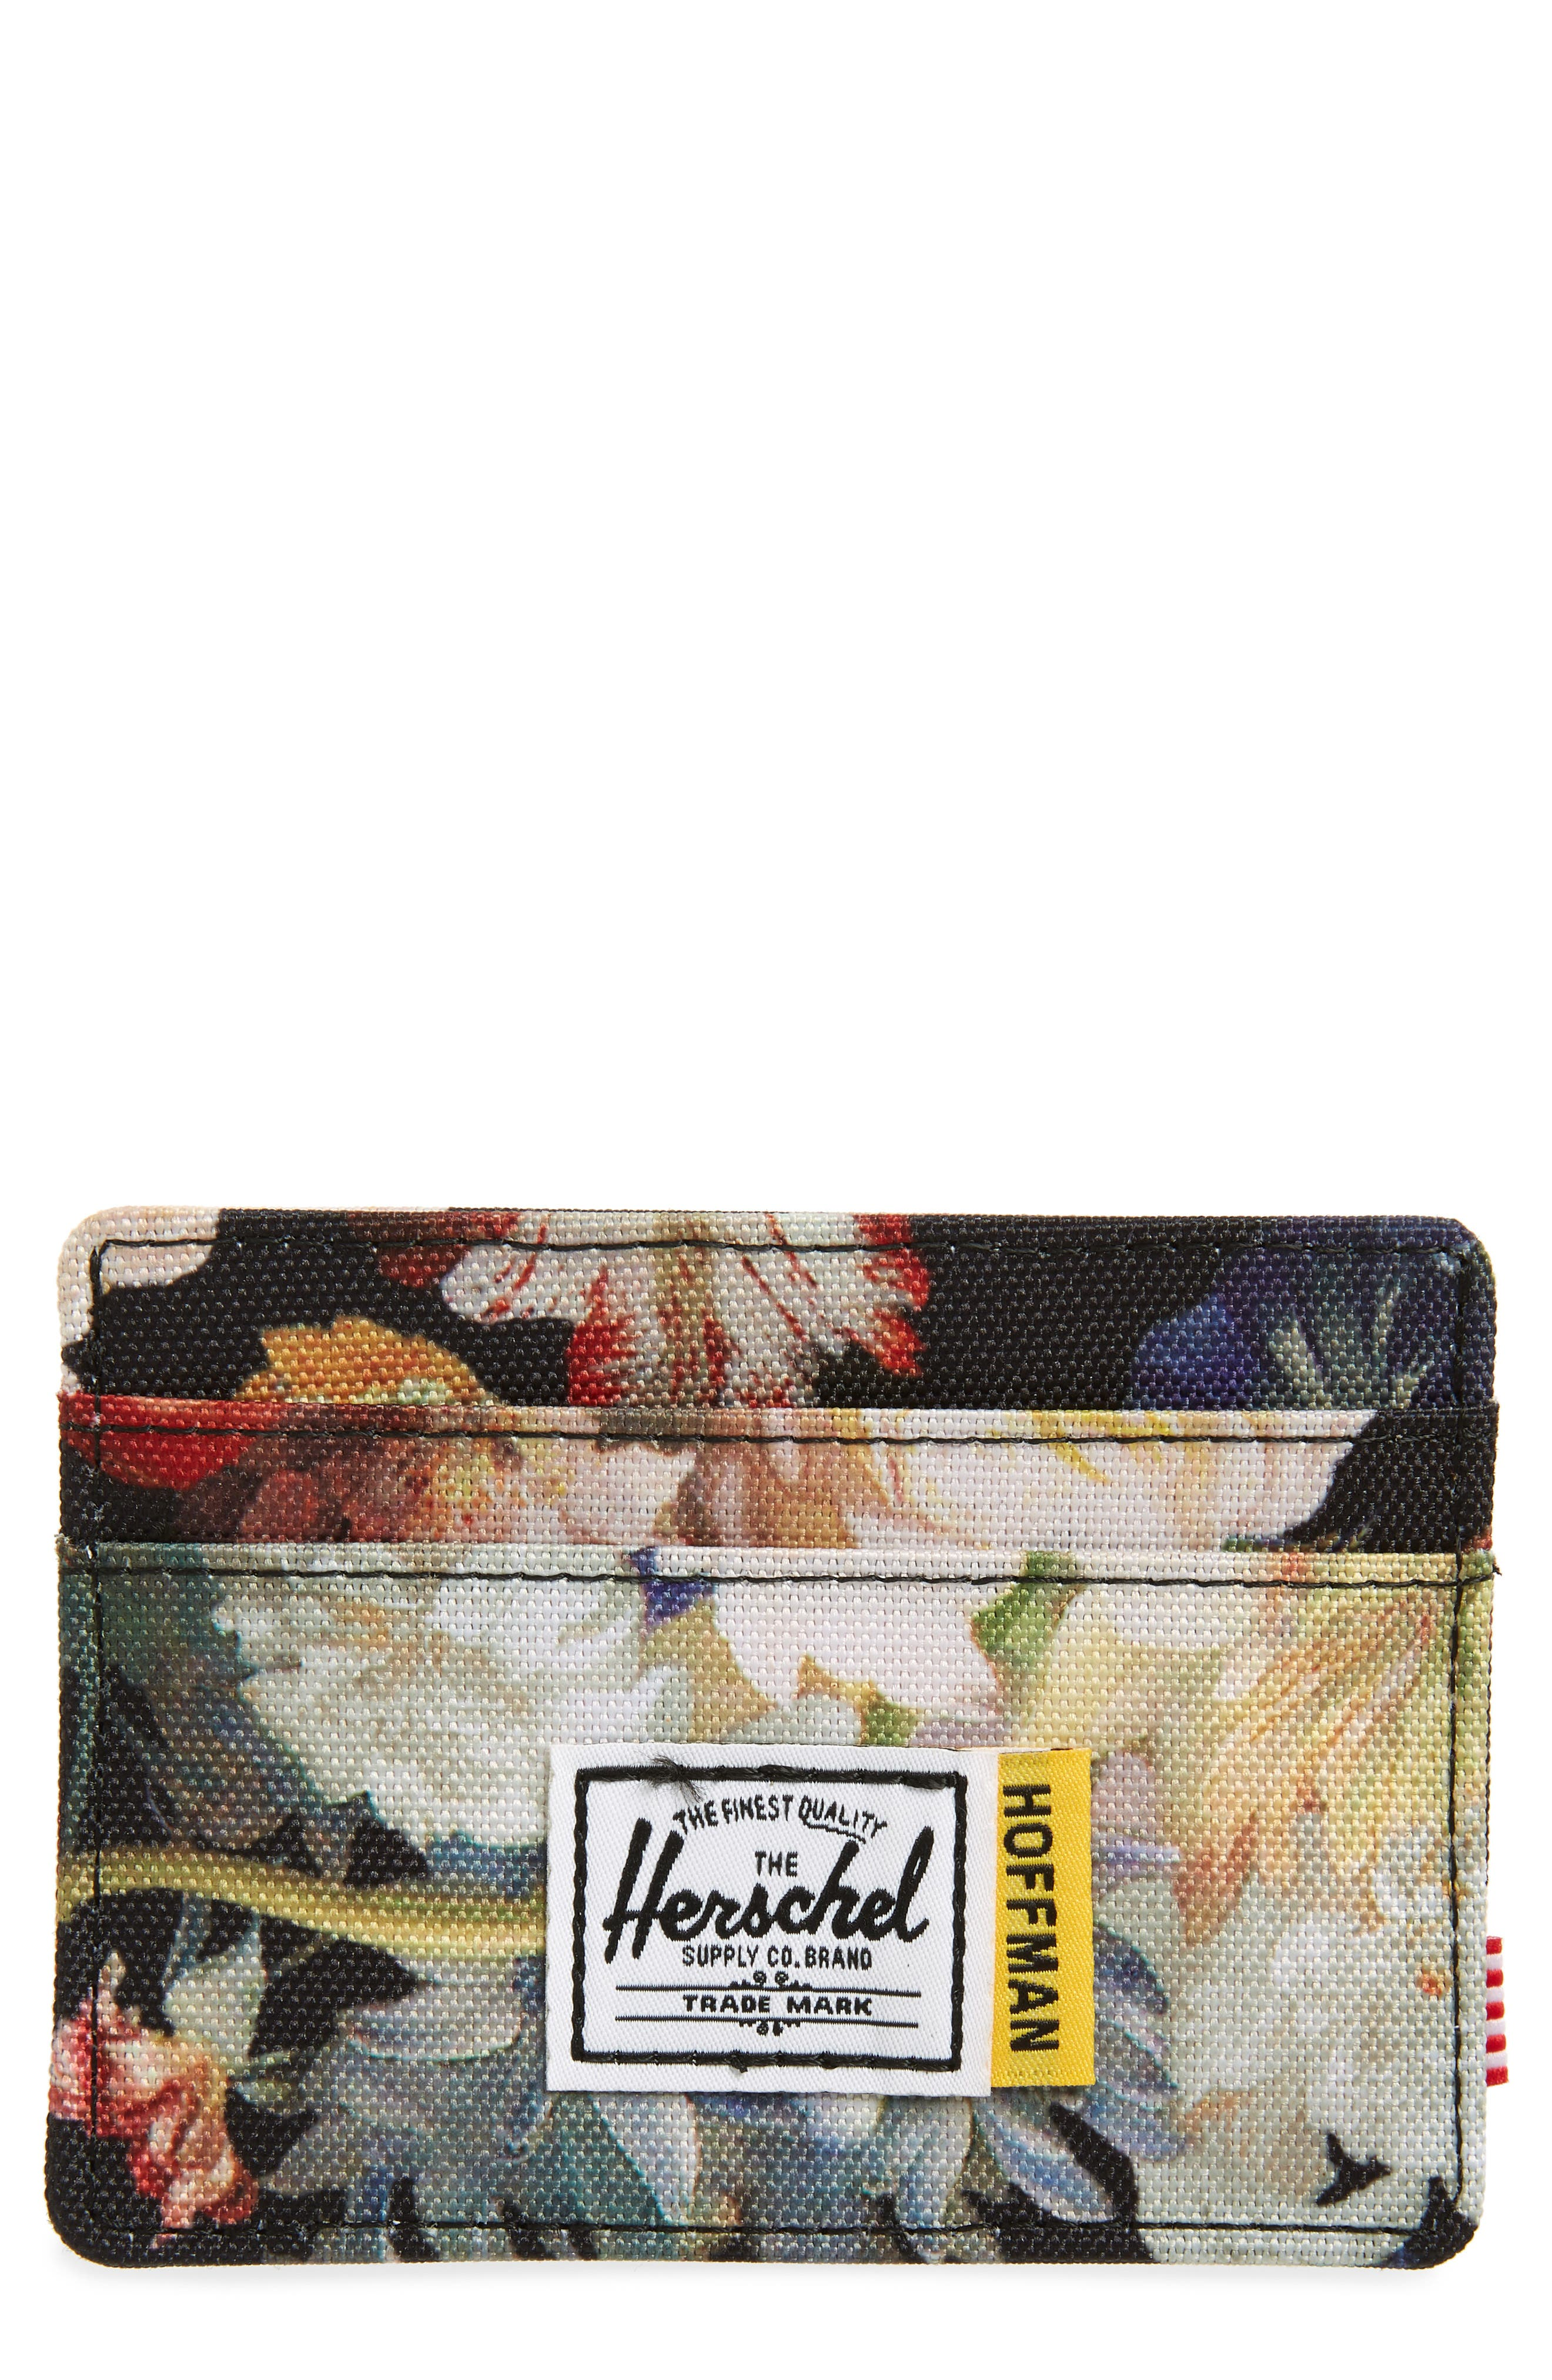 Hoffman Charlie Card Case,                             Main thumbnail 1, color,                             FALL FLORAL